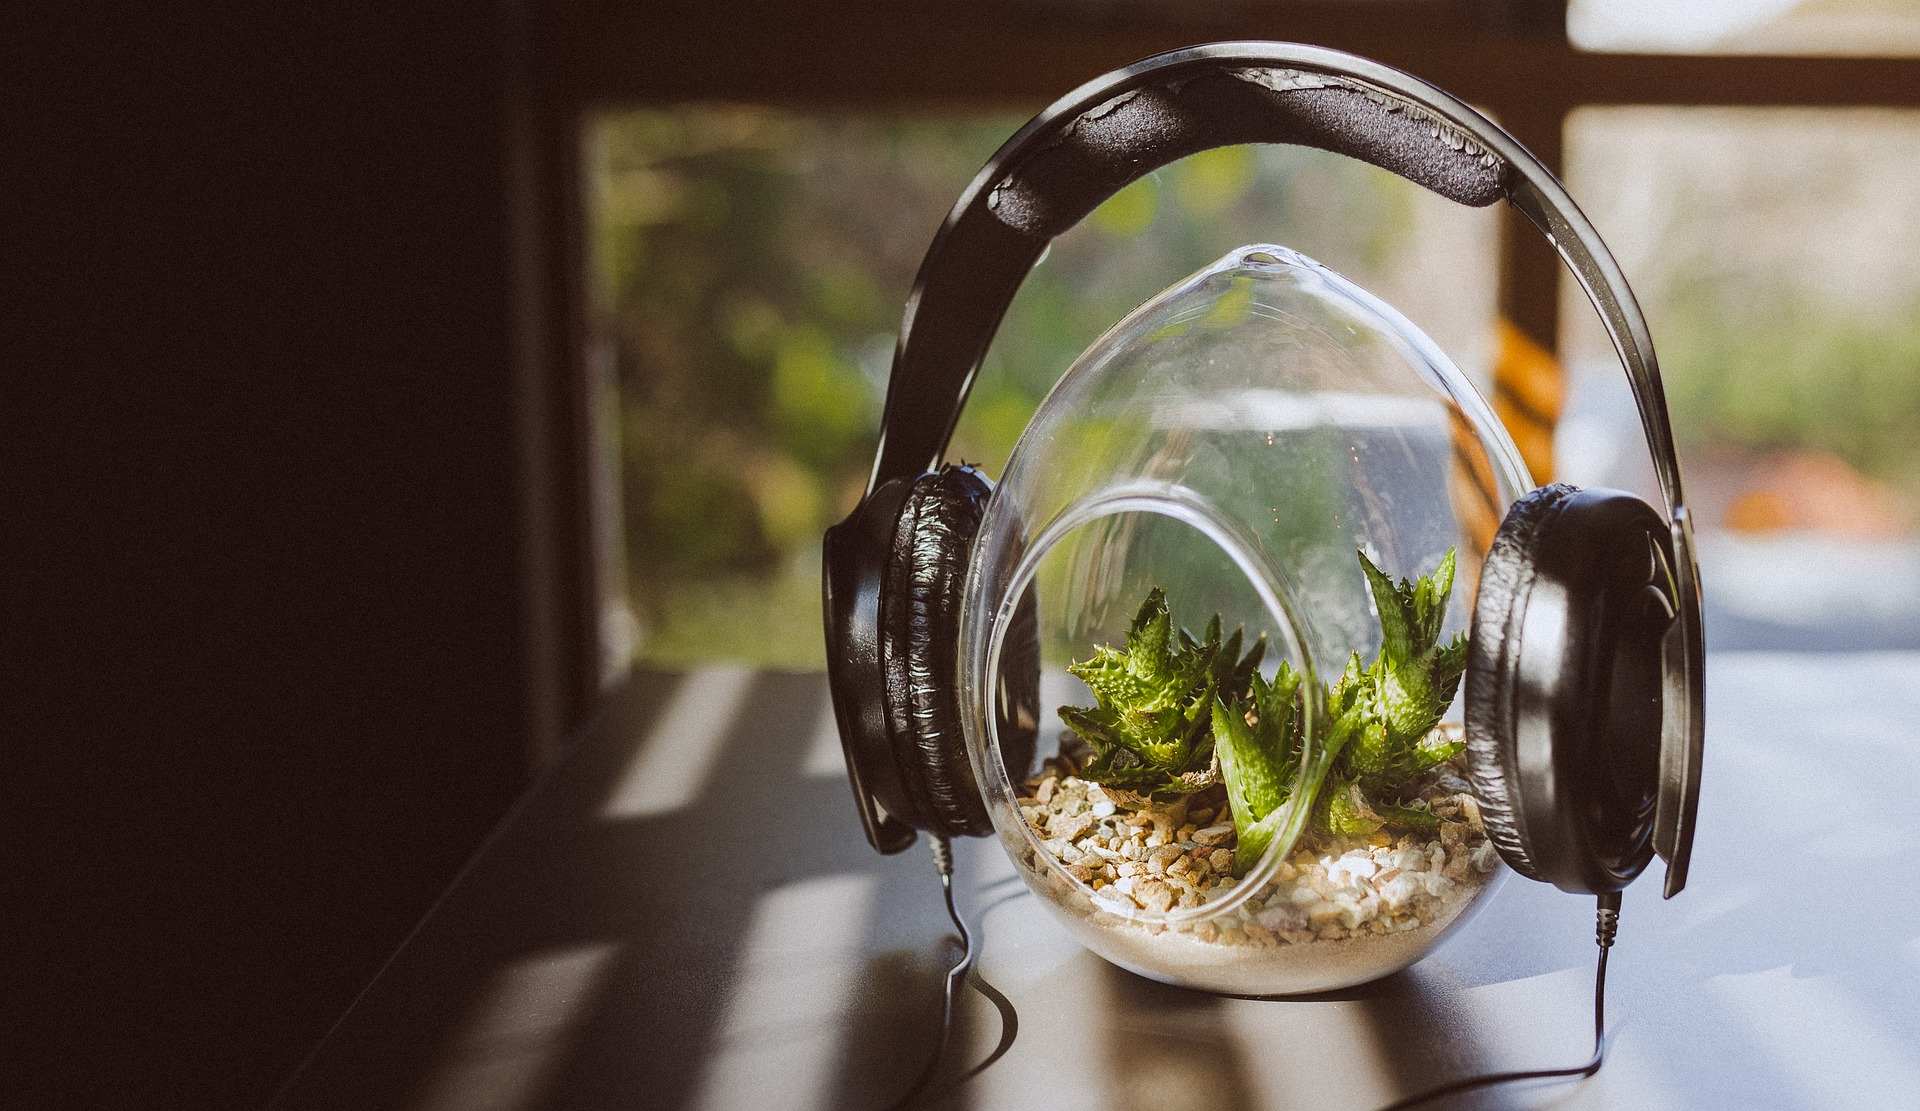 Music Meditation - Using Technology To Find Solace